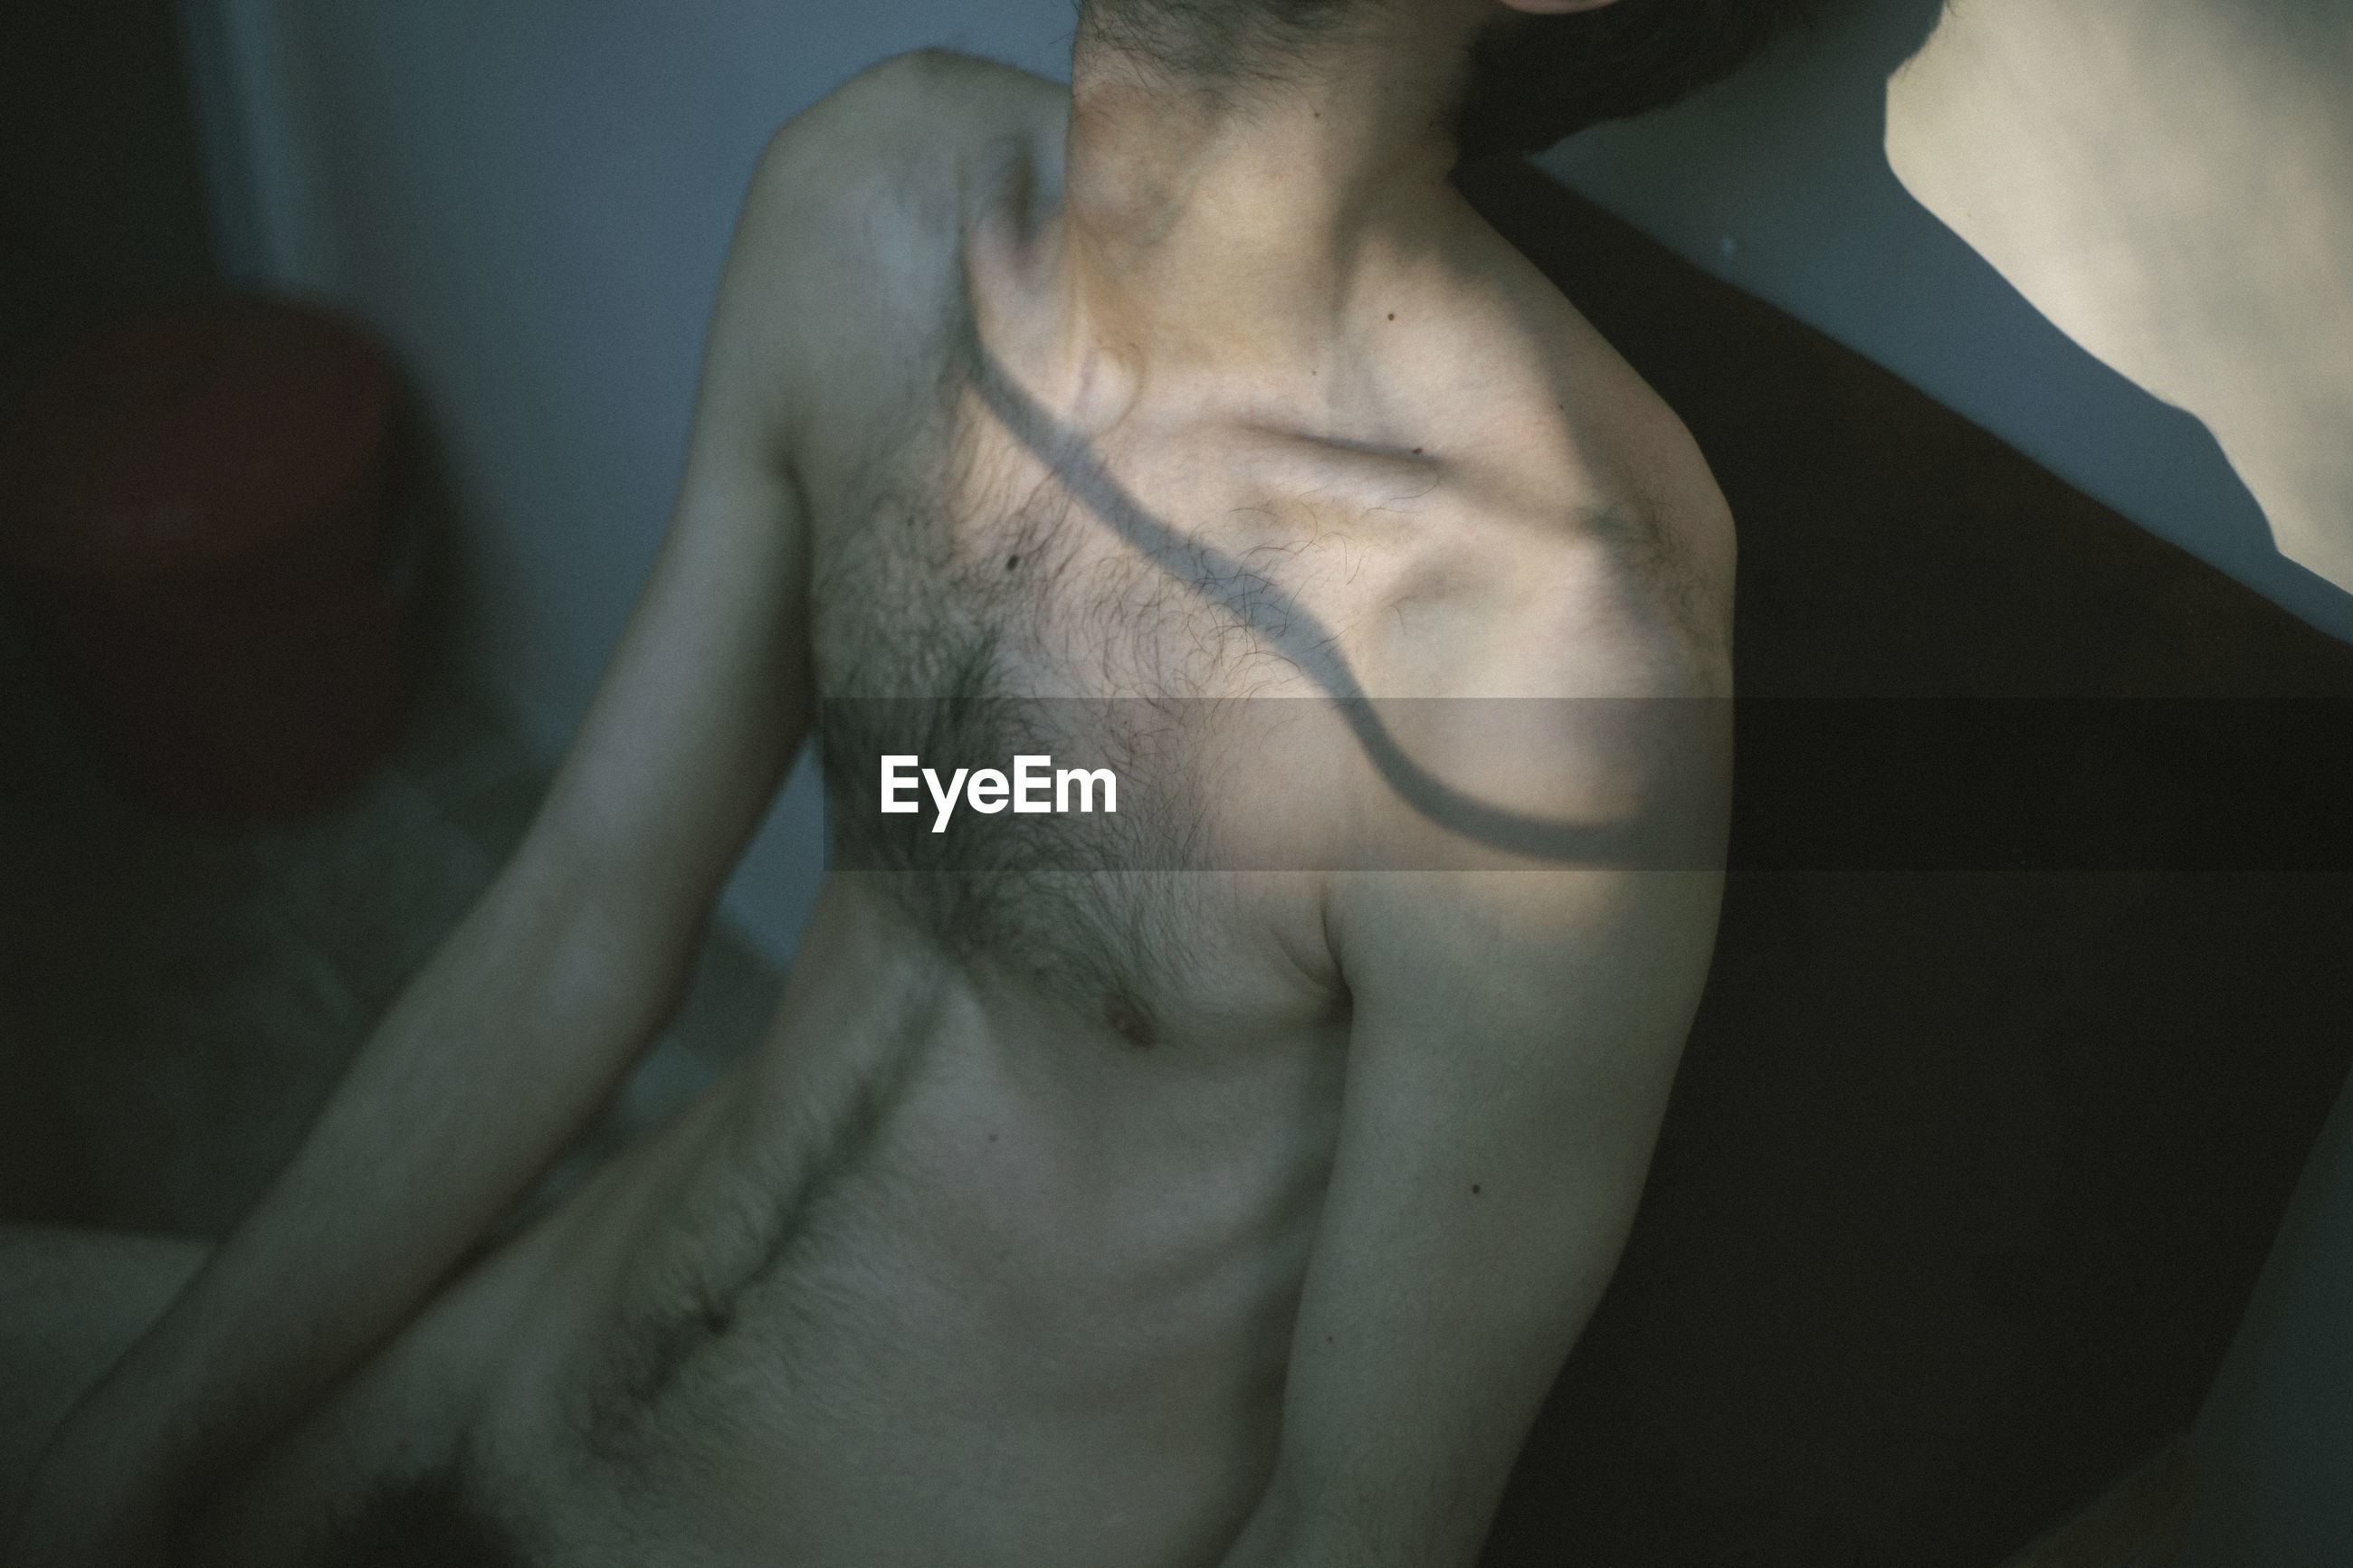 CLOSE-UP OF SHIRTLESS MAN STANDING IN BED